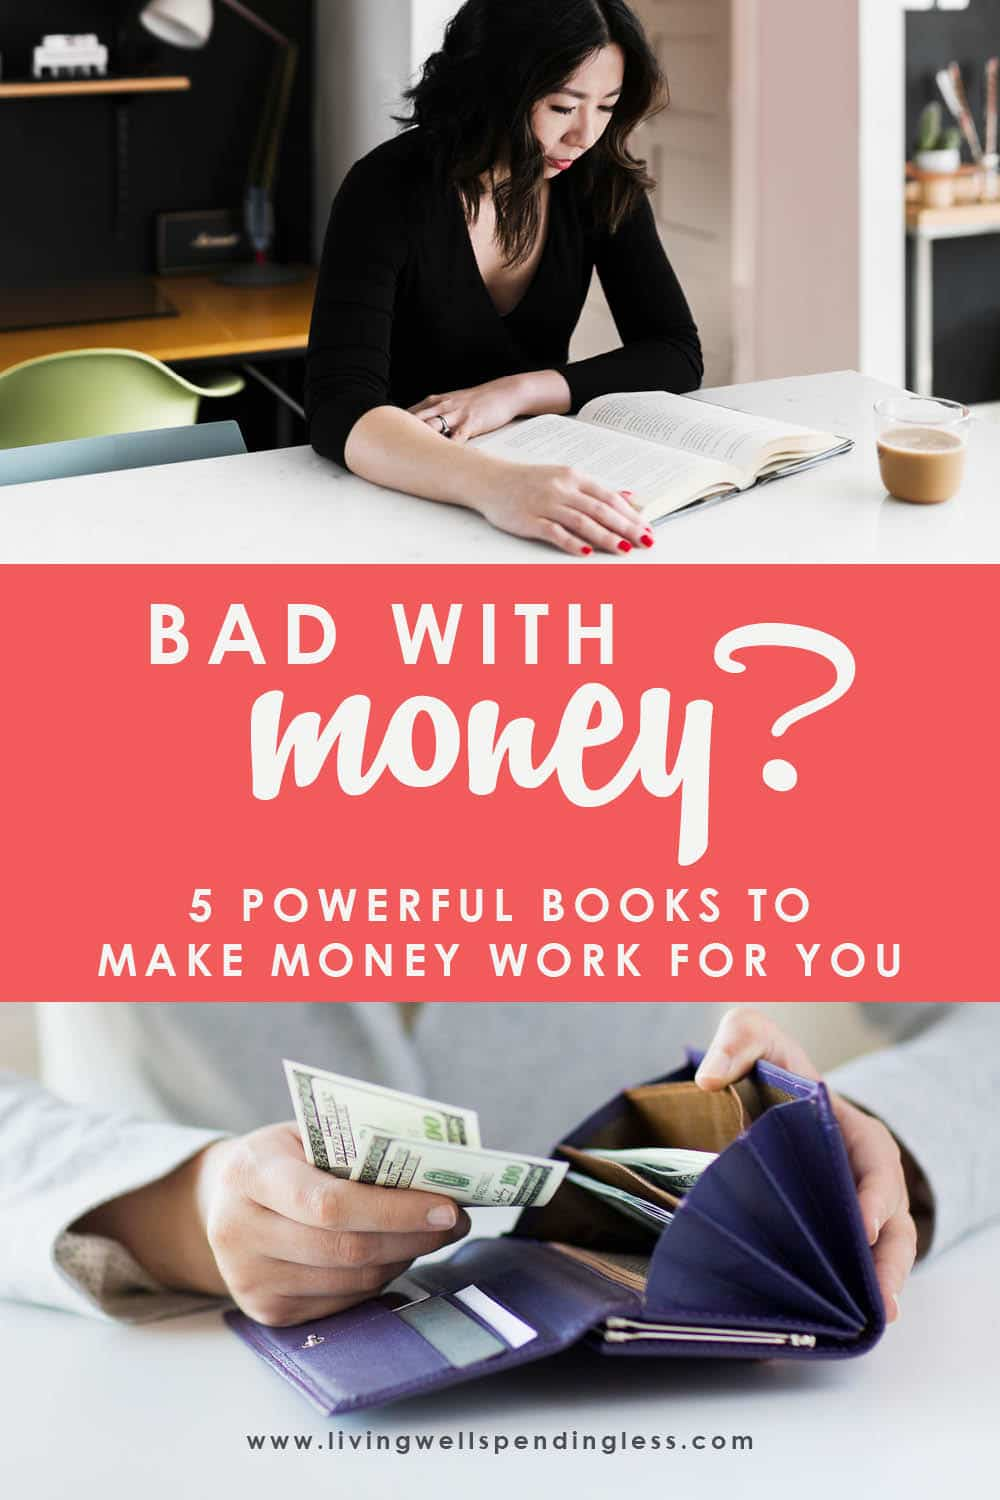 How to Make Your Money Work for You | Top 5 Books to Read Get the solutions and understanding you need to live a financially abundant life! These are the top 5 books to read when it comes to understanding how to make your money work for you. With the right tools and resources, having financial security is possible, so don't miss it! #financialpeace #budgeting #bestbooksonmoney #moneybooks #finances #smartmoney